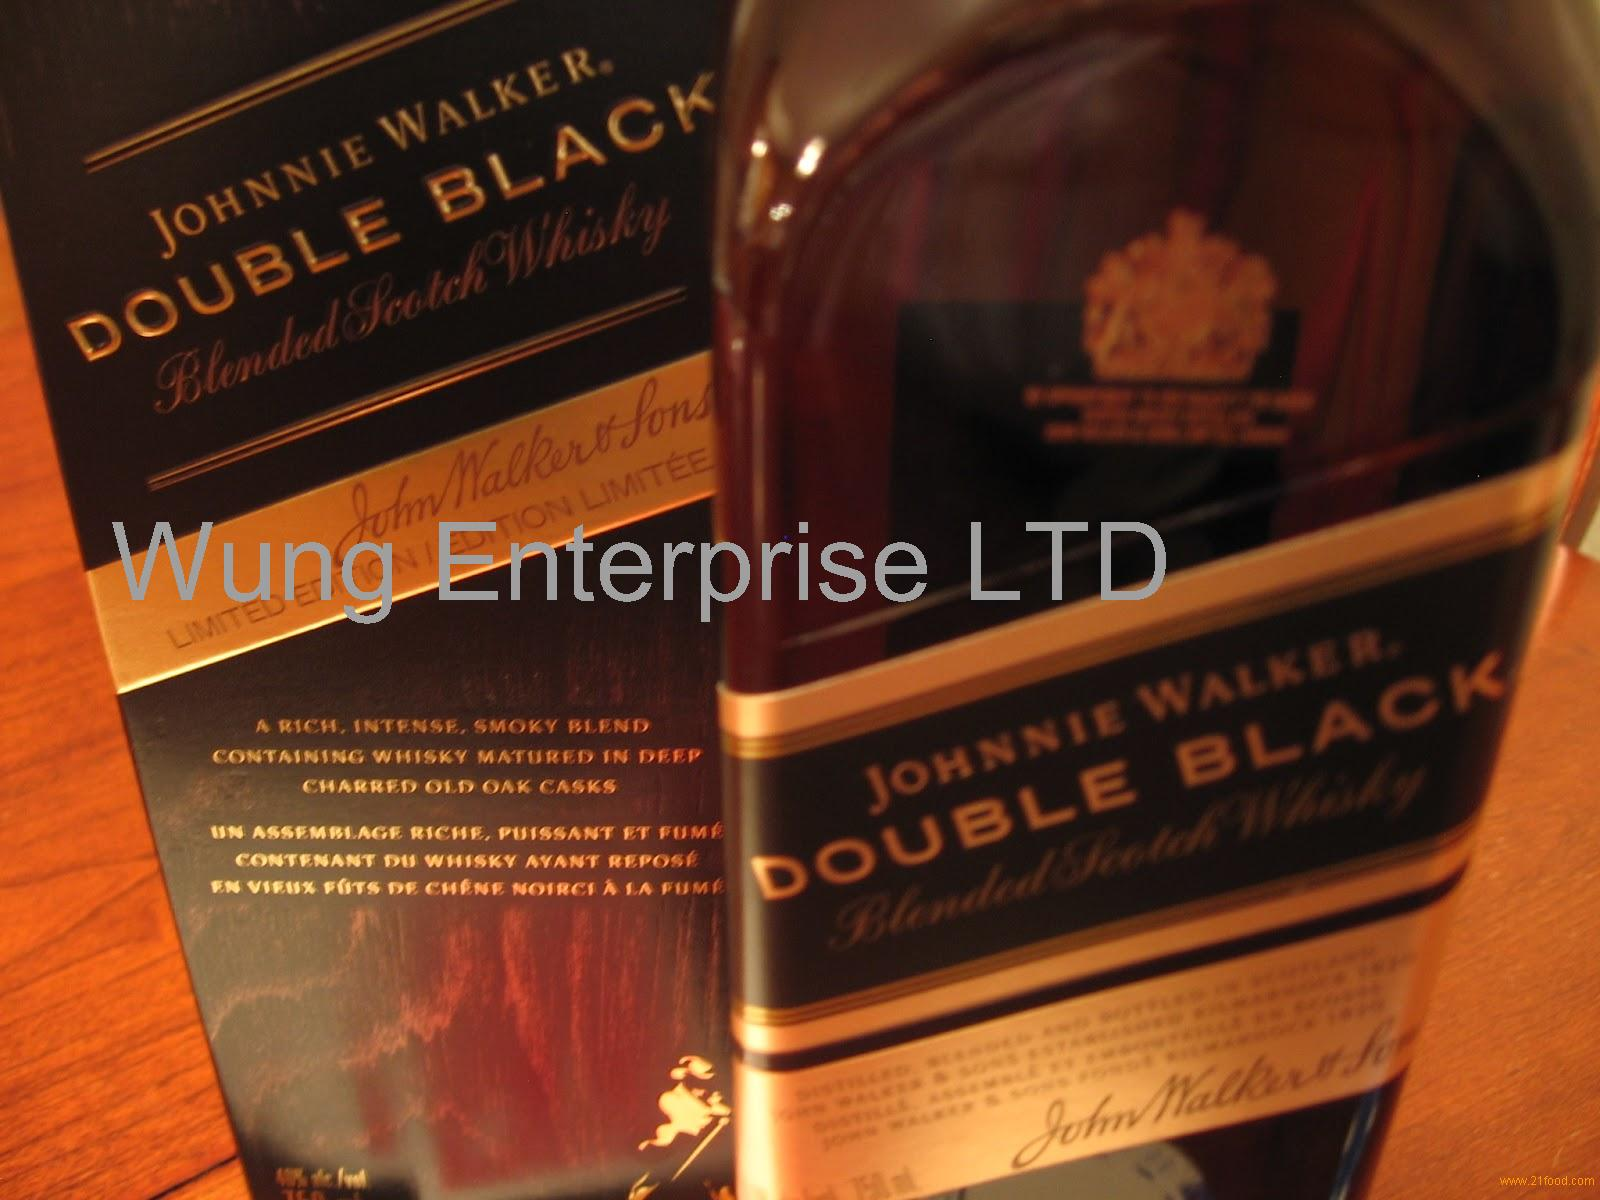 Johnny Walker Black Label, Blue Label Red Label, Double